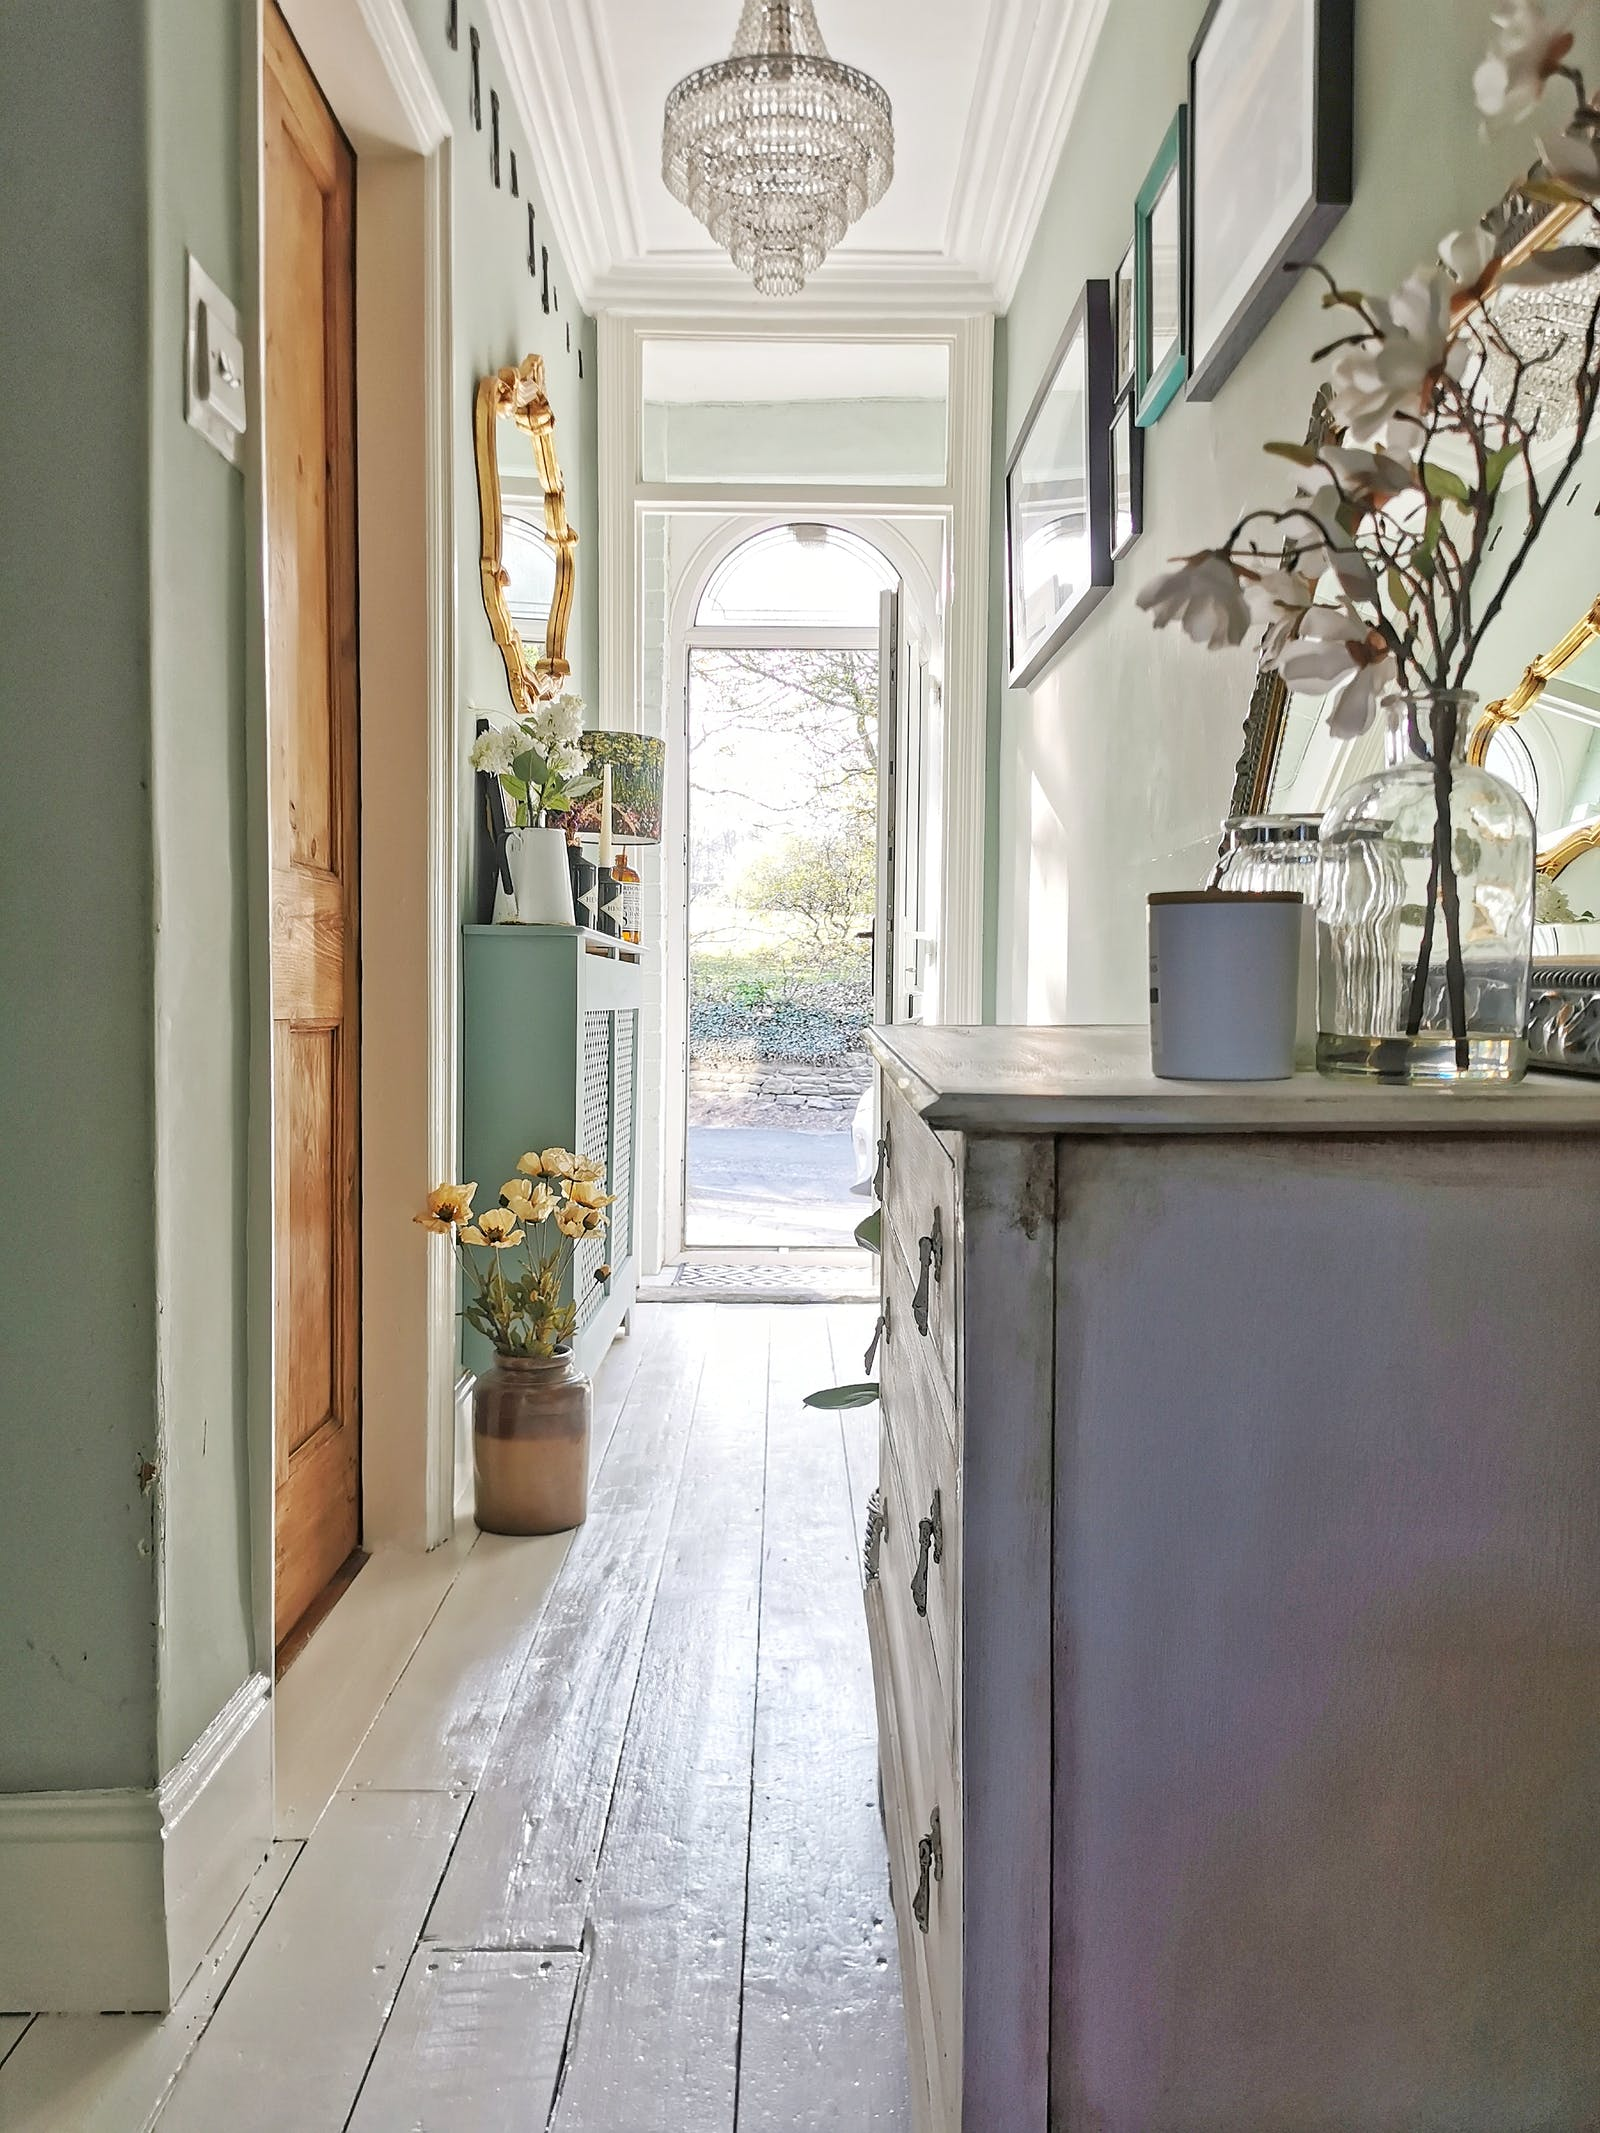 A bright hallway painted in a light green colour with some vintage wooden furniture and floorboards painted in white